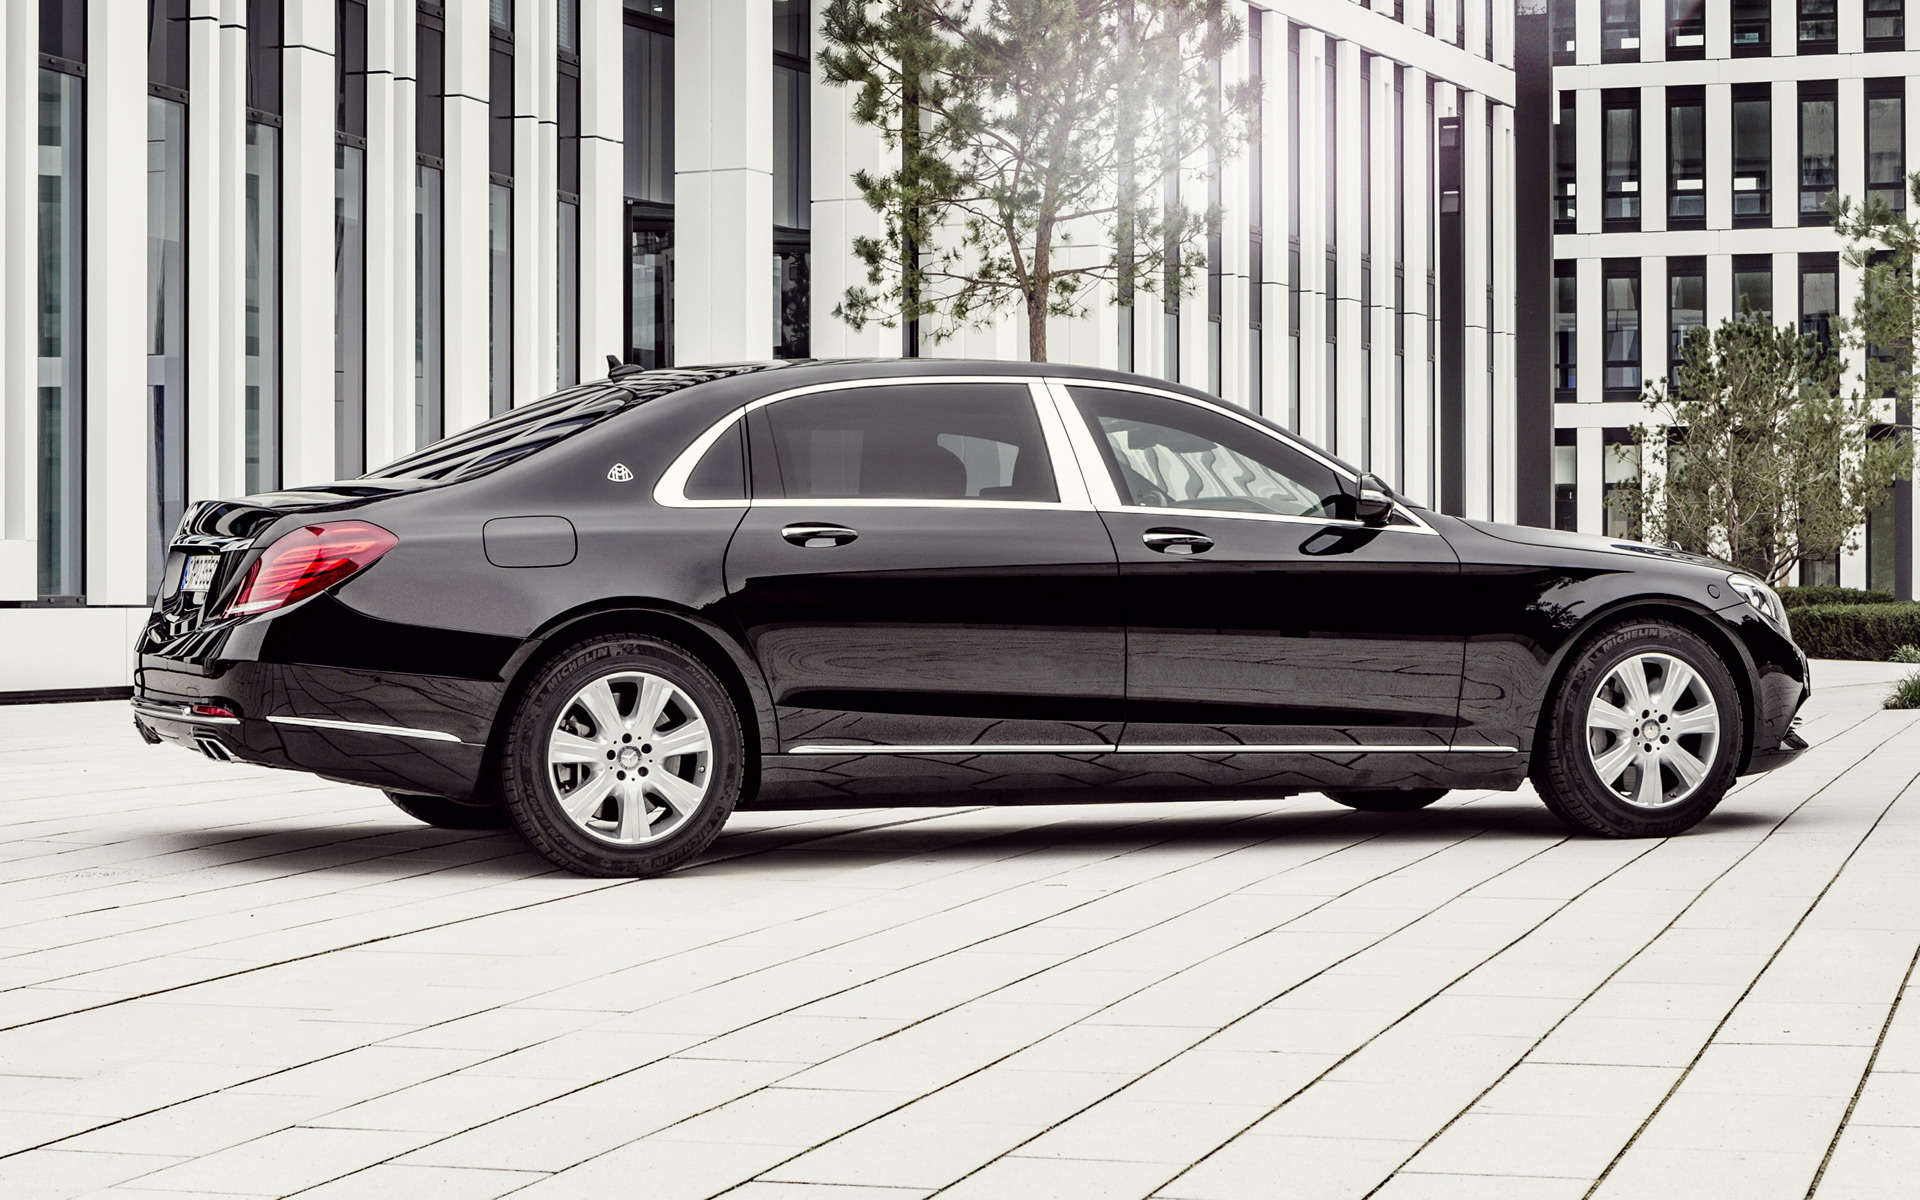 2016 mercedes maybach s class guard wallpapers and hd images car pixel. Black Bedroom Furniture Sets. Home Design Ideas